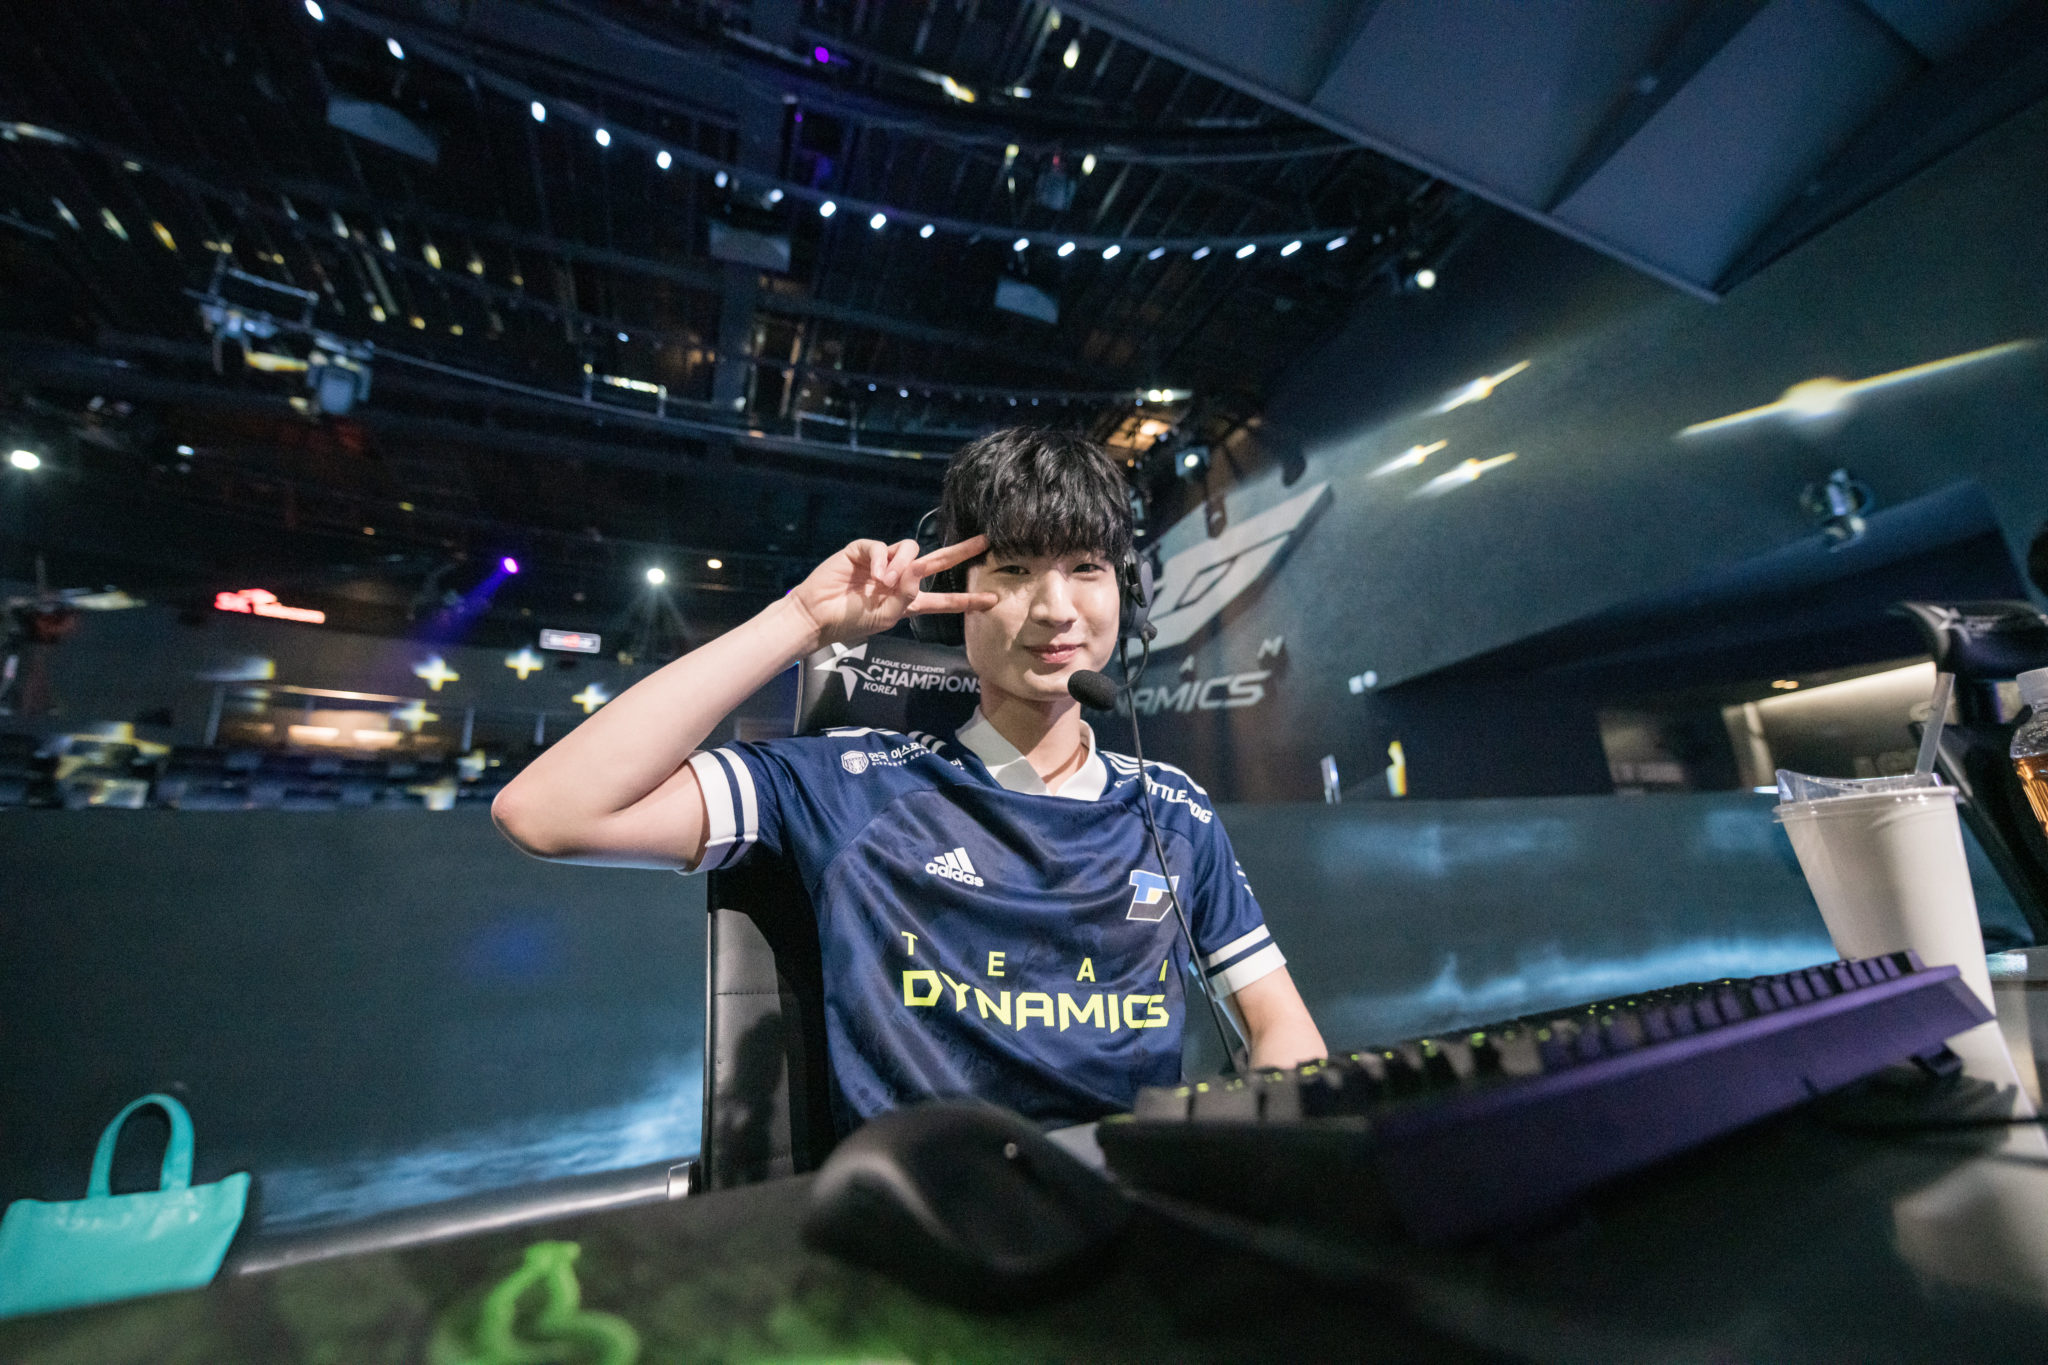 League Champions Korea's Team Dynamics Swept KT Rolster In Their First Ever LCK Match